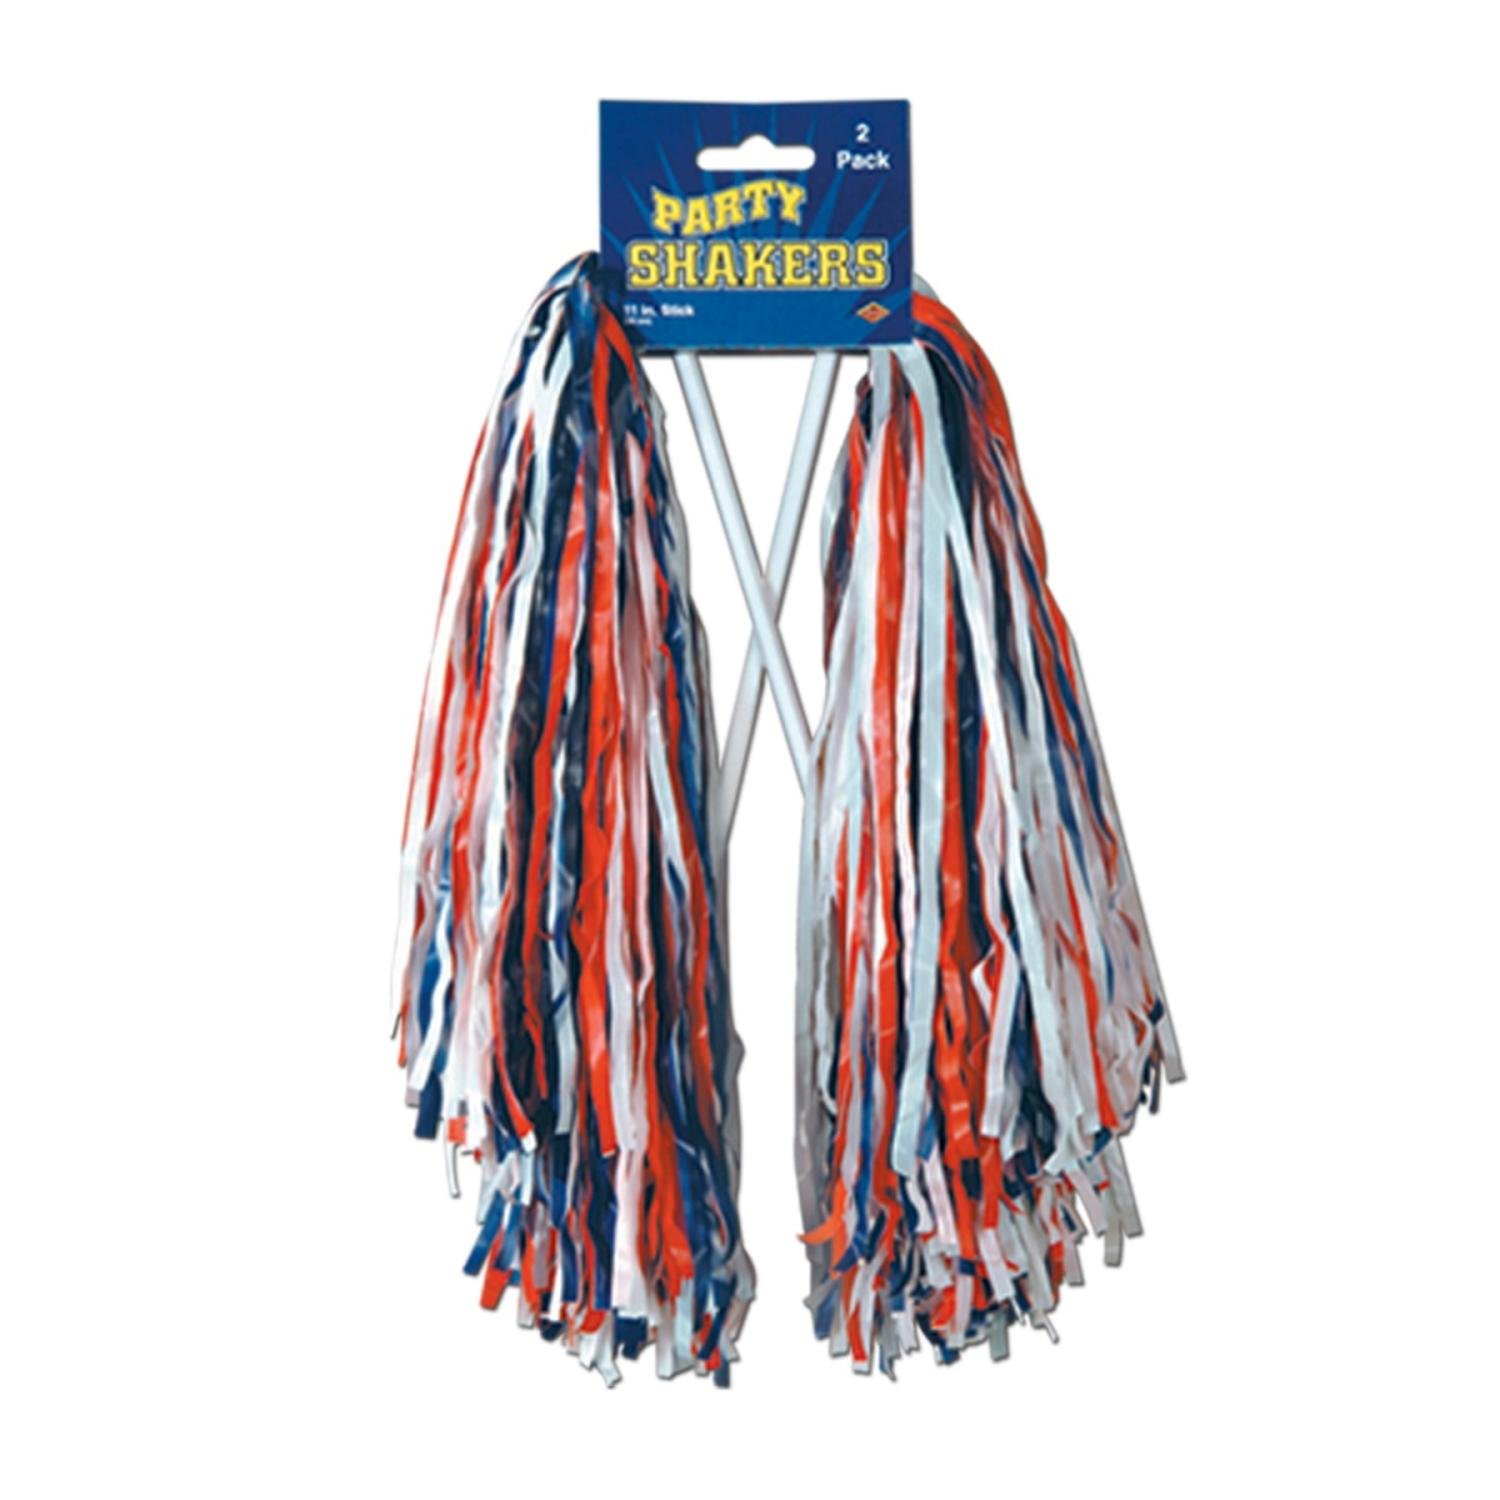 Club Pack of 48 Pre-Packaged Red, White and Blue Football Themed School Spirt Poly Shakers 12''